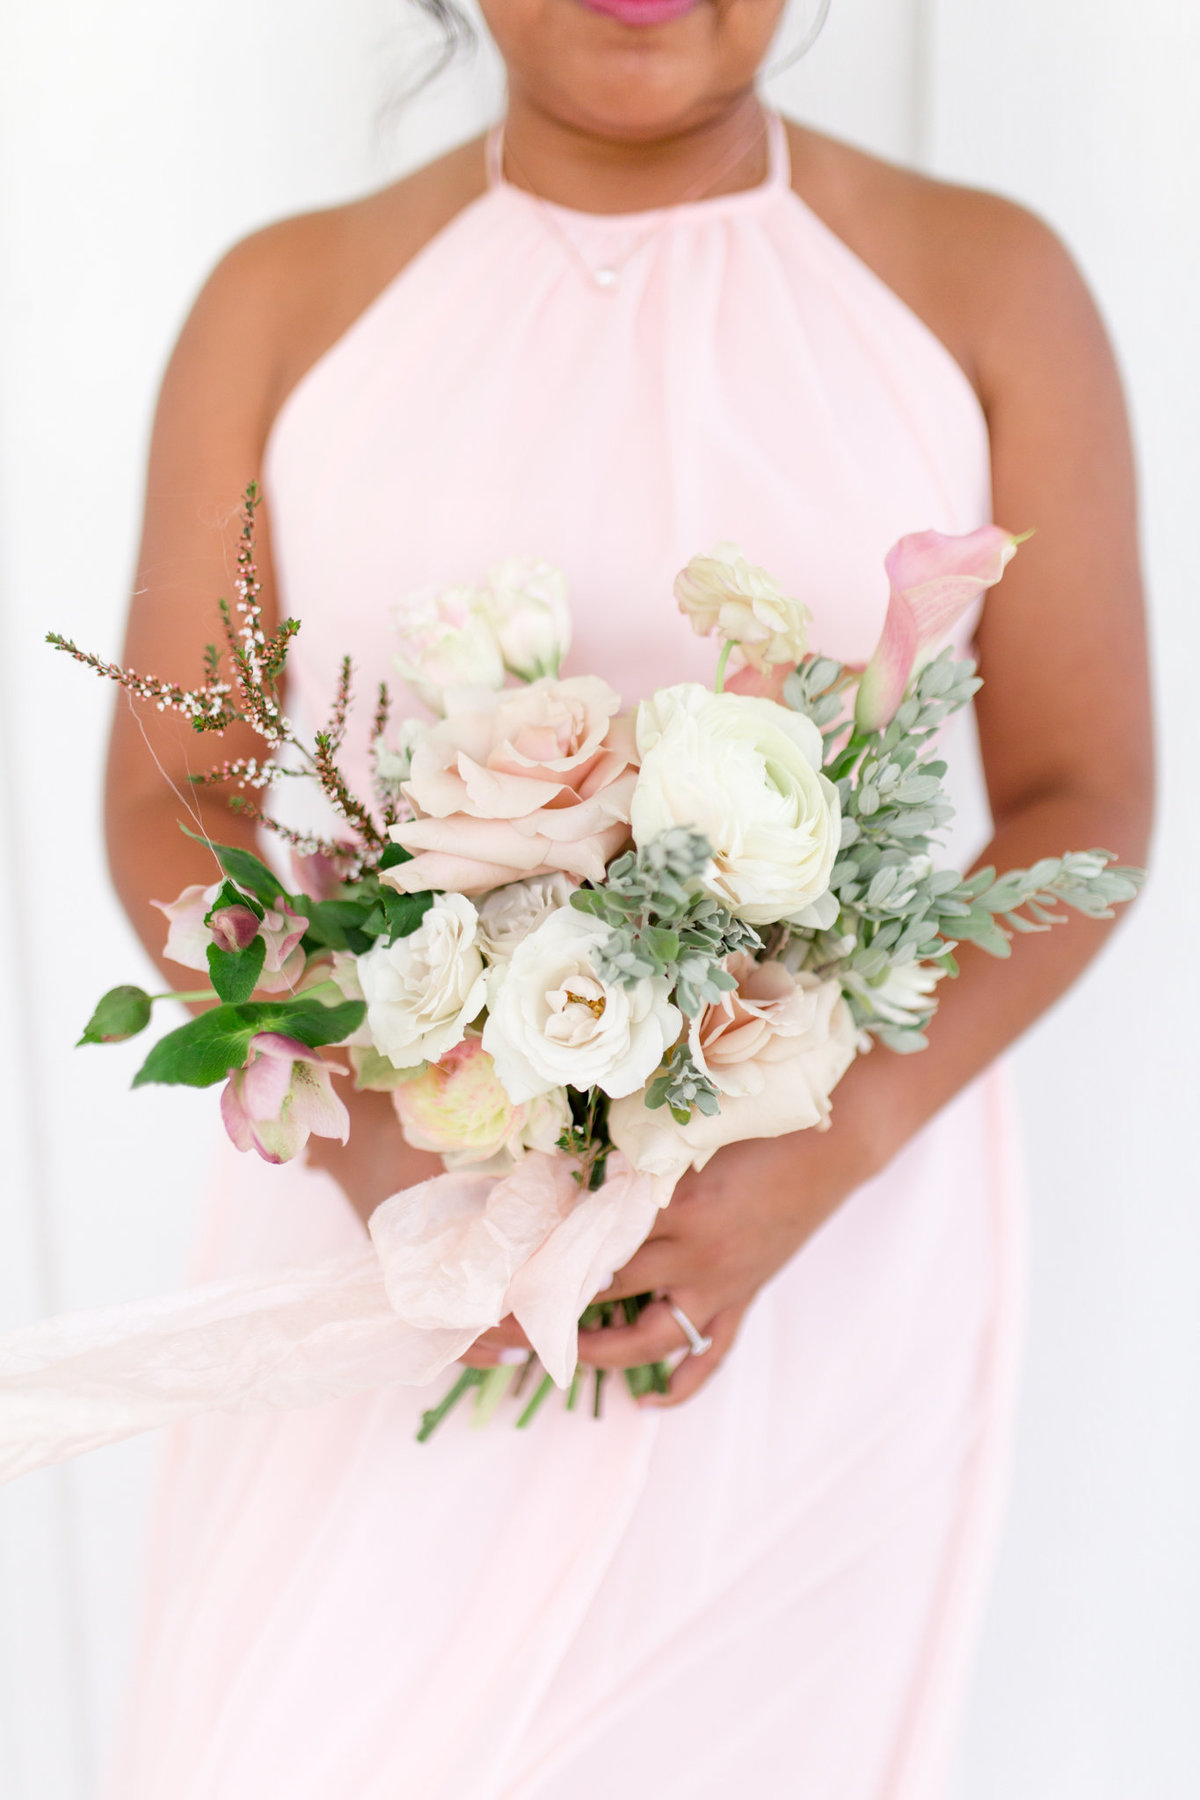 Grand Ivory Wedding| Dallas, Texas | DFW Wedding Photographer | Sami Kathryn Photography-42